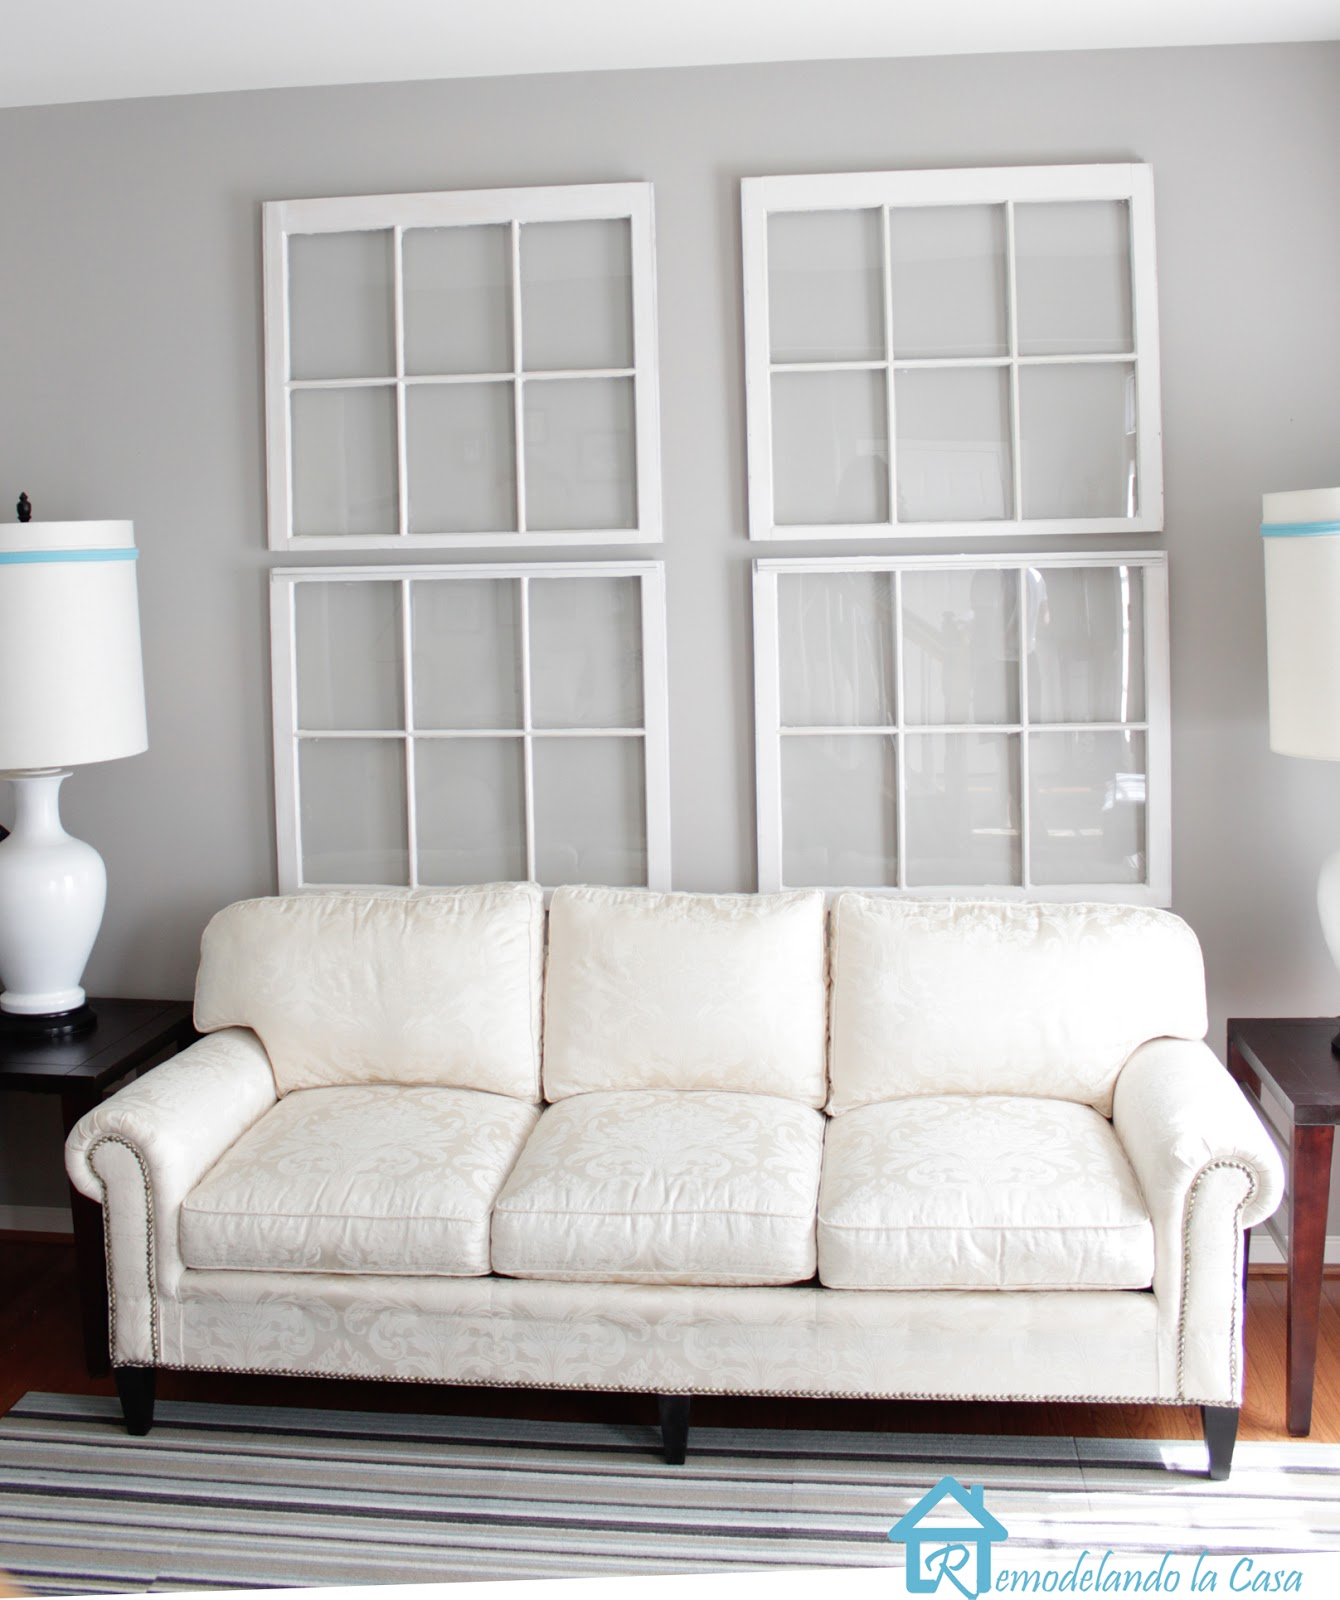 Remodelando la Casa: Decorating with Old Windows